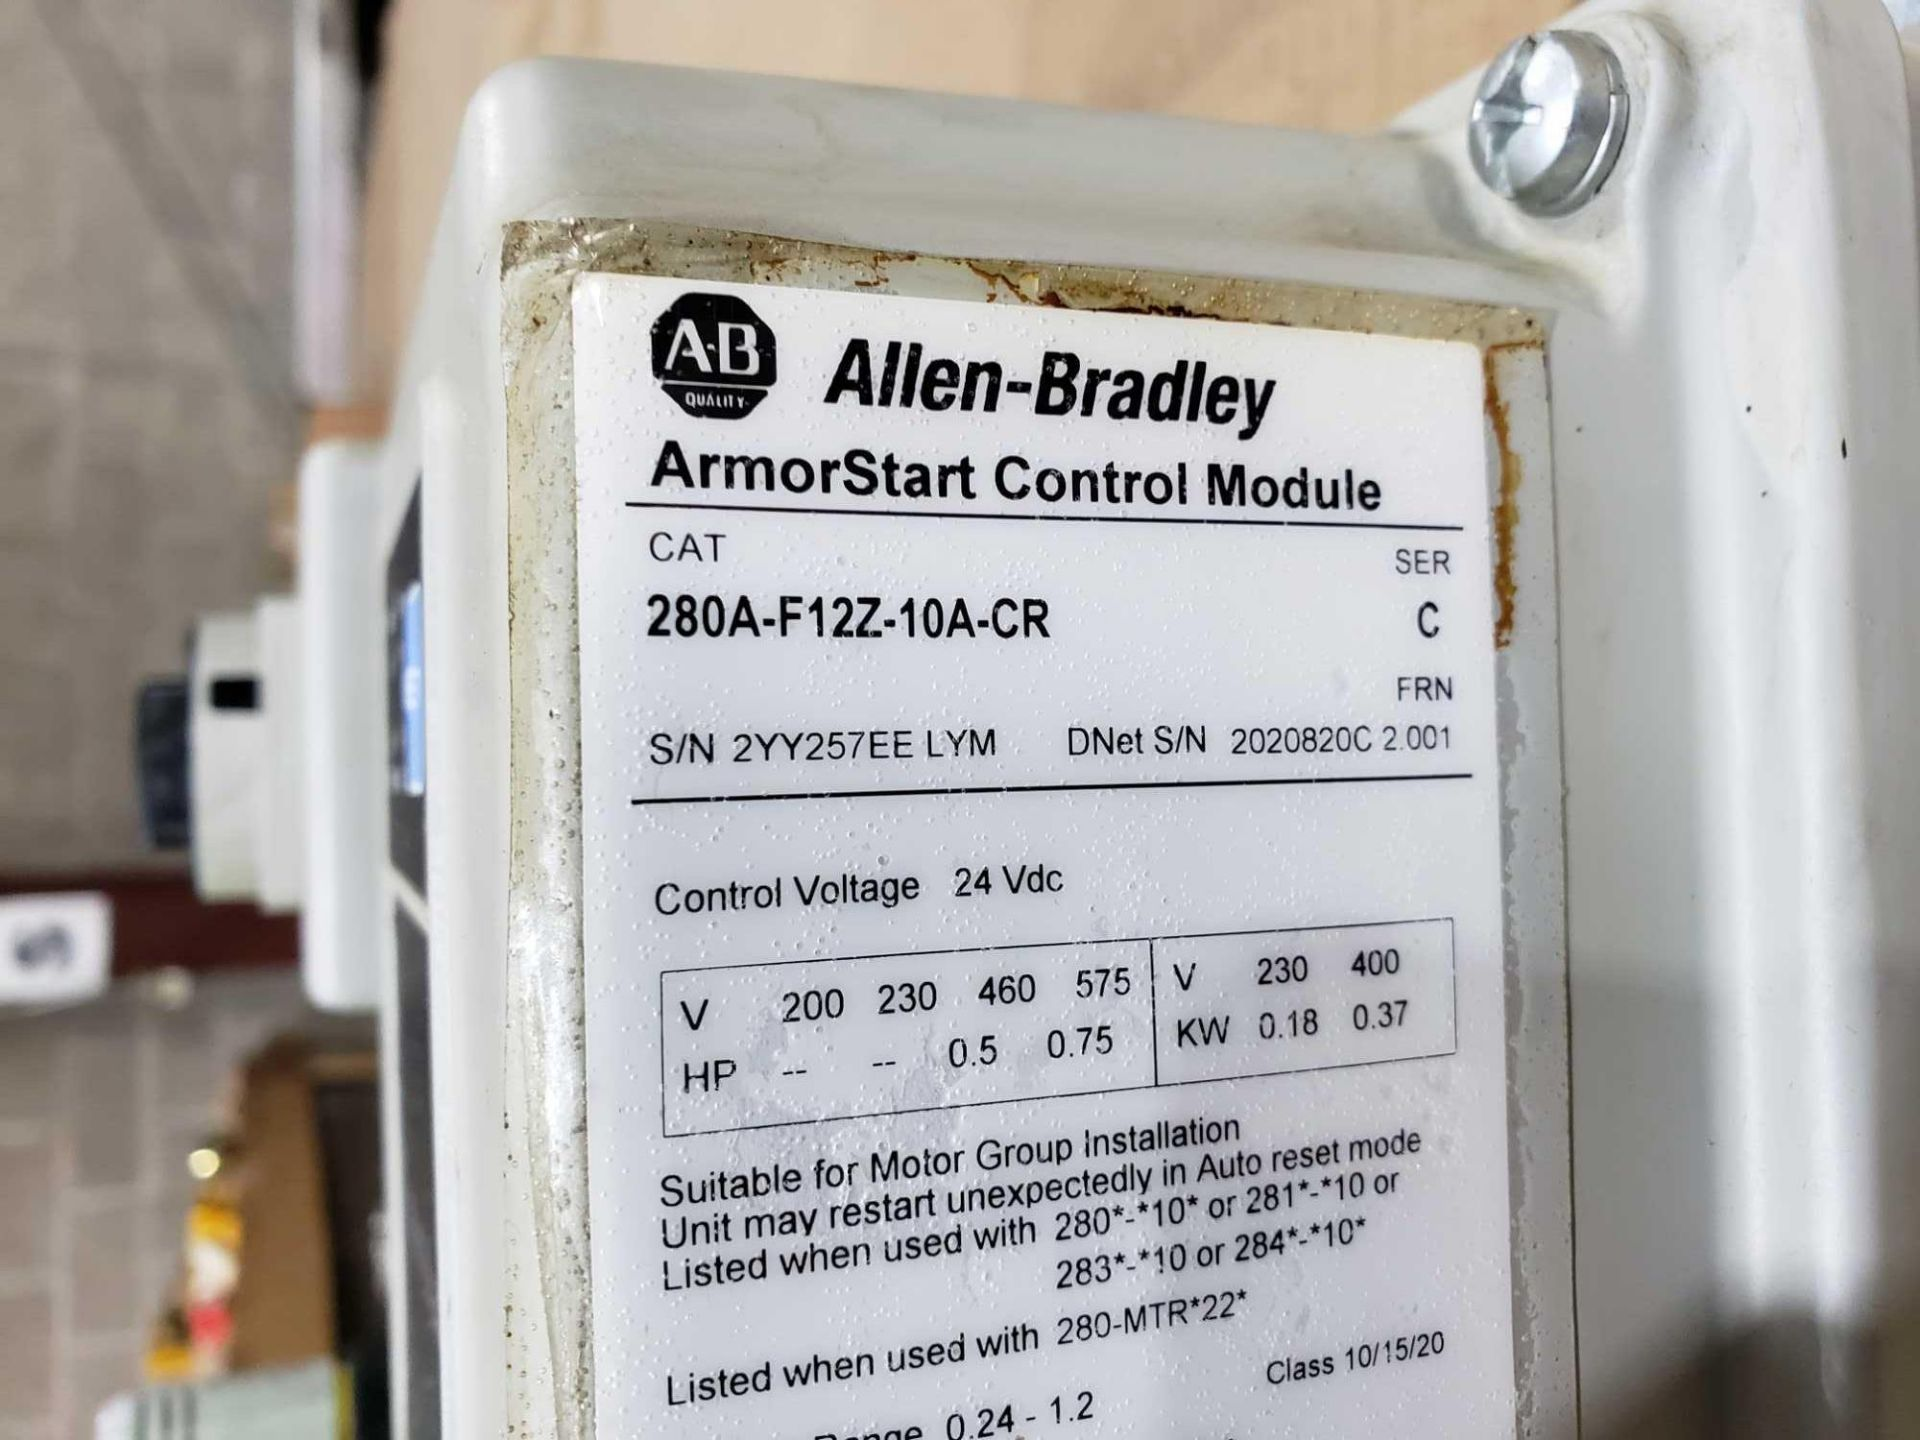 Lot 1 - Allen Bradley Armorstart Catalog 280A-F12Z-10A-CR with base Catalog 280A-FN-10C.